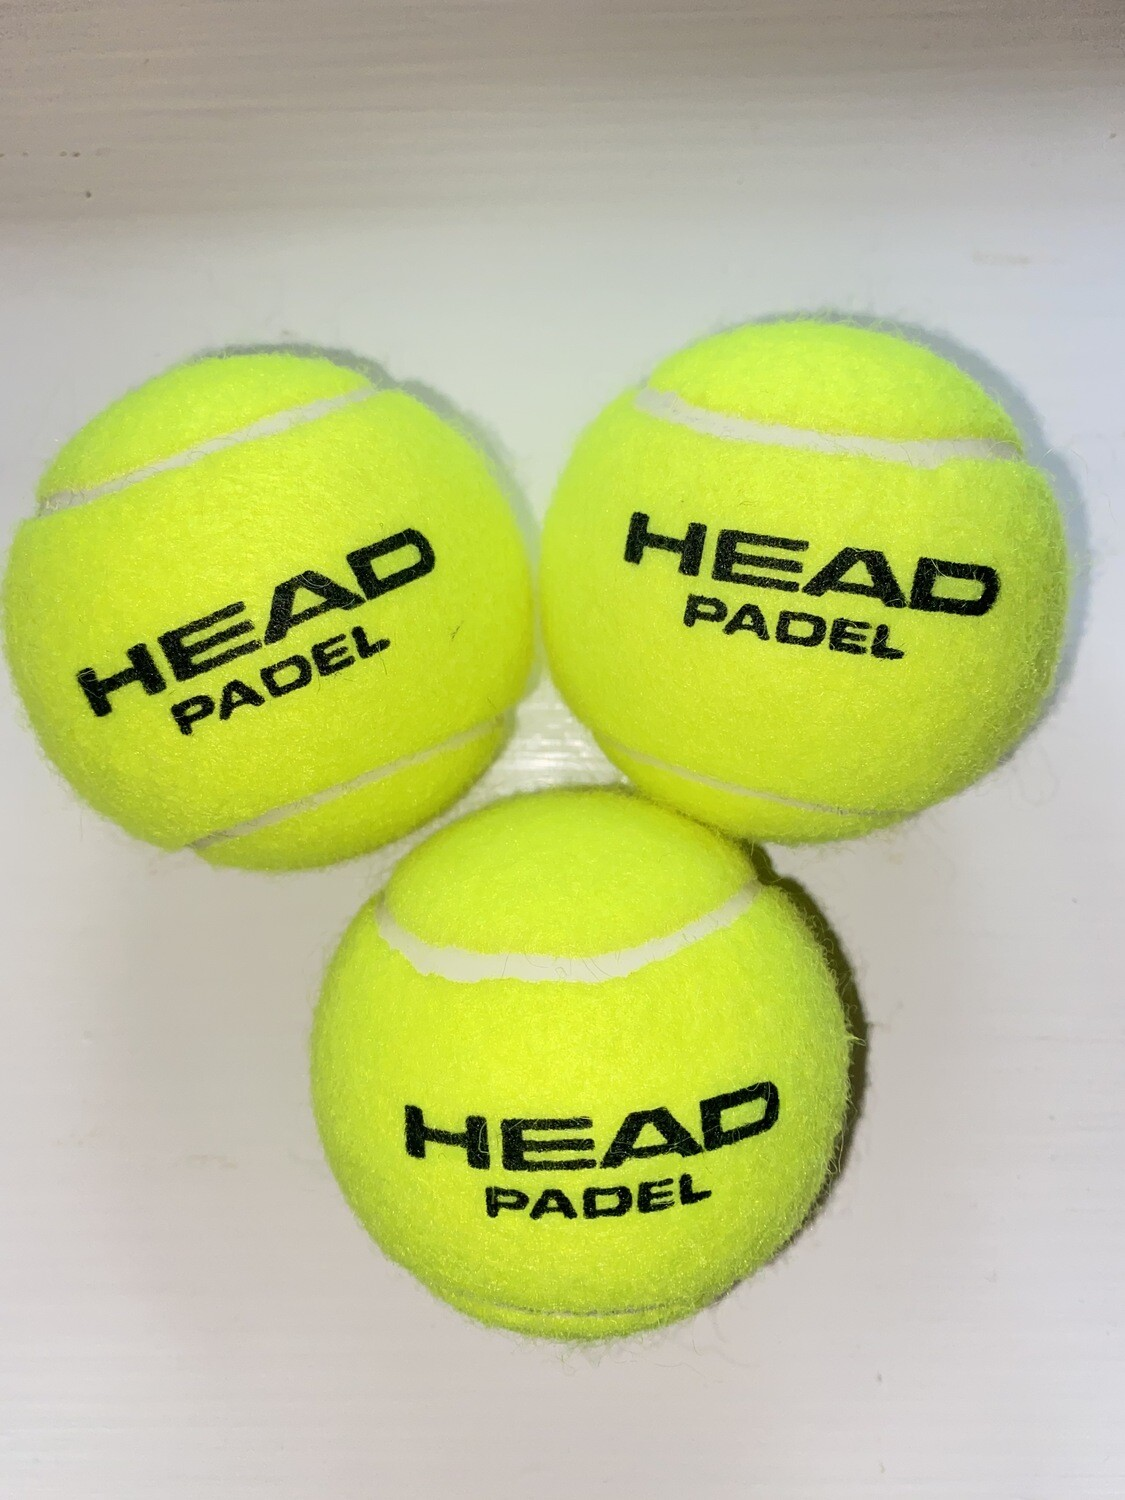 NTB - Personalised Padel tennis balls - Standard text edition